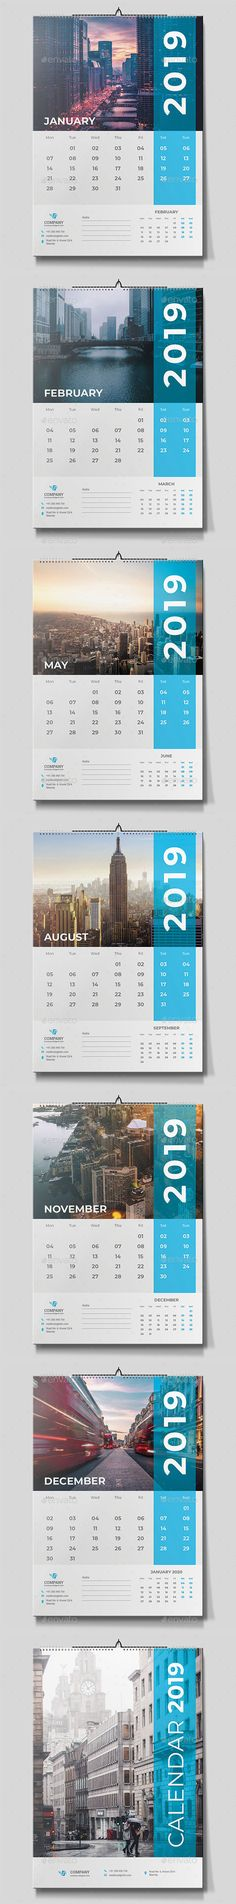 Super Ideas For Wall Illustration Office Graphic Design Calendar 2019 Design, Wall Calendar Design, Calendar 2019 Template, Graphic Design Calendar, Stationery Templates, Stationery Design, Print Templates, Table Calendar, Calendar Calendar